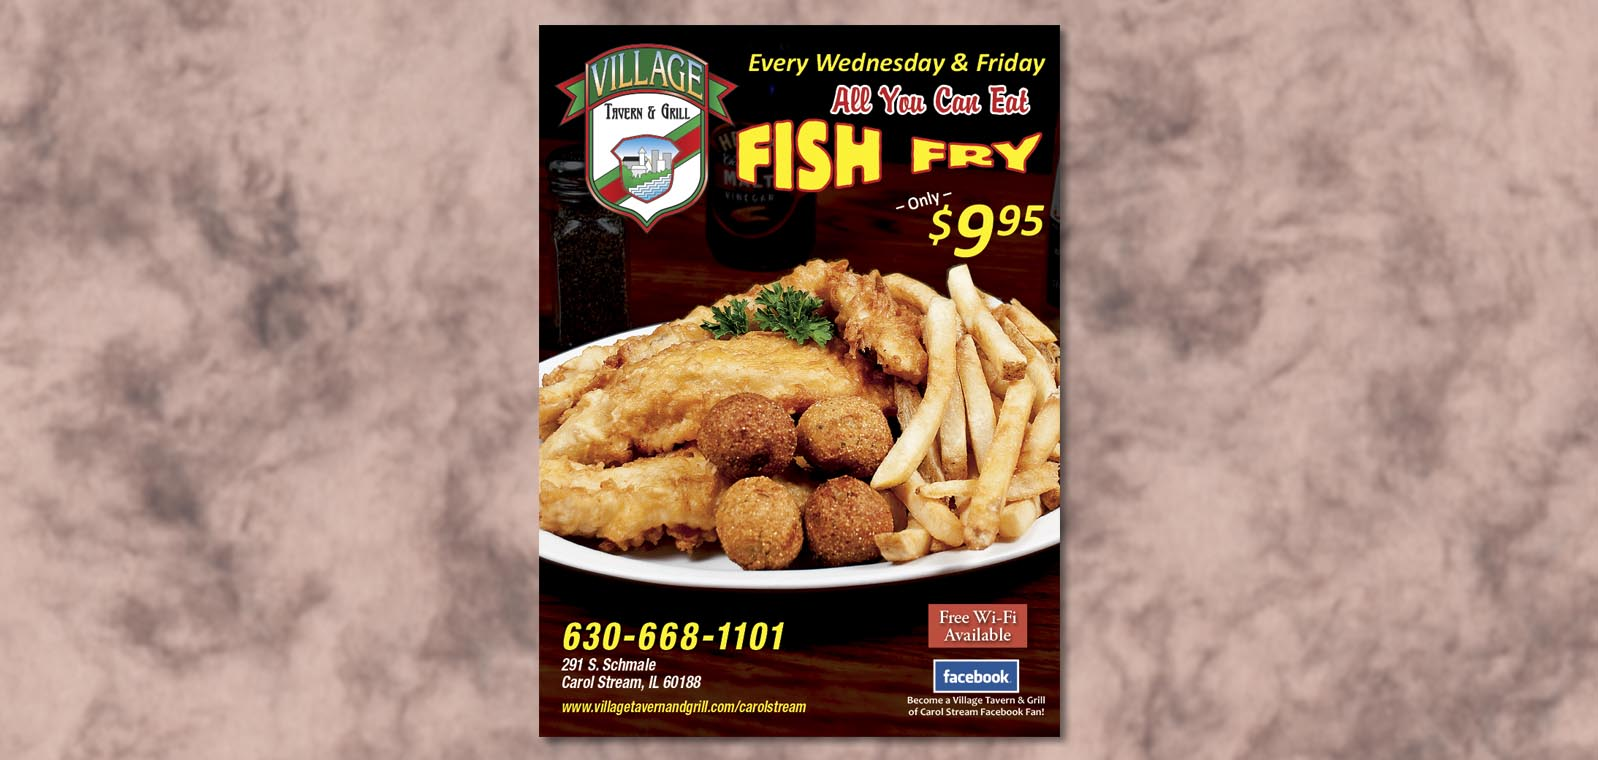 Fish fry table tent designvillage tavern grill for Doug s fish fry